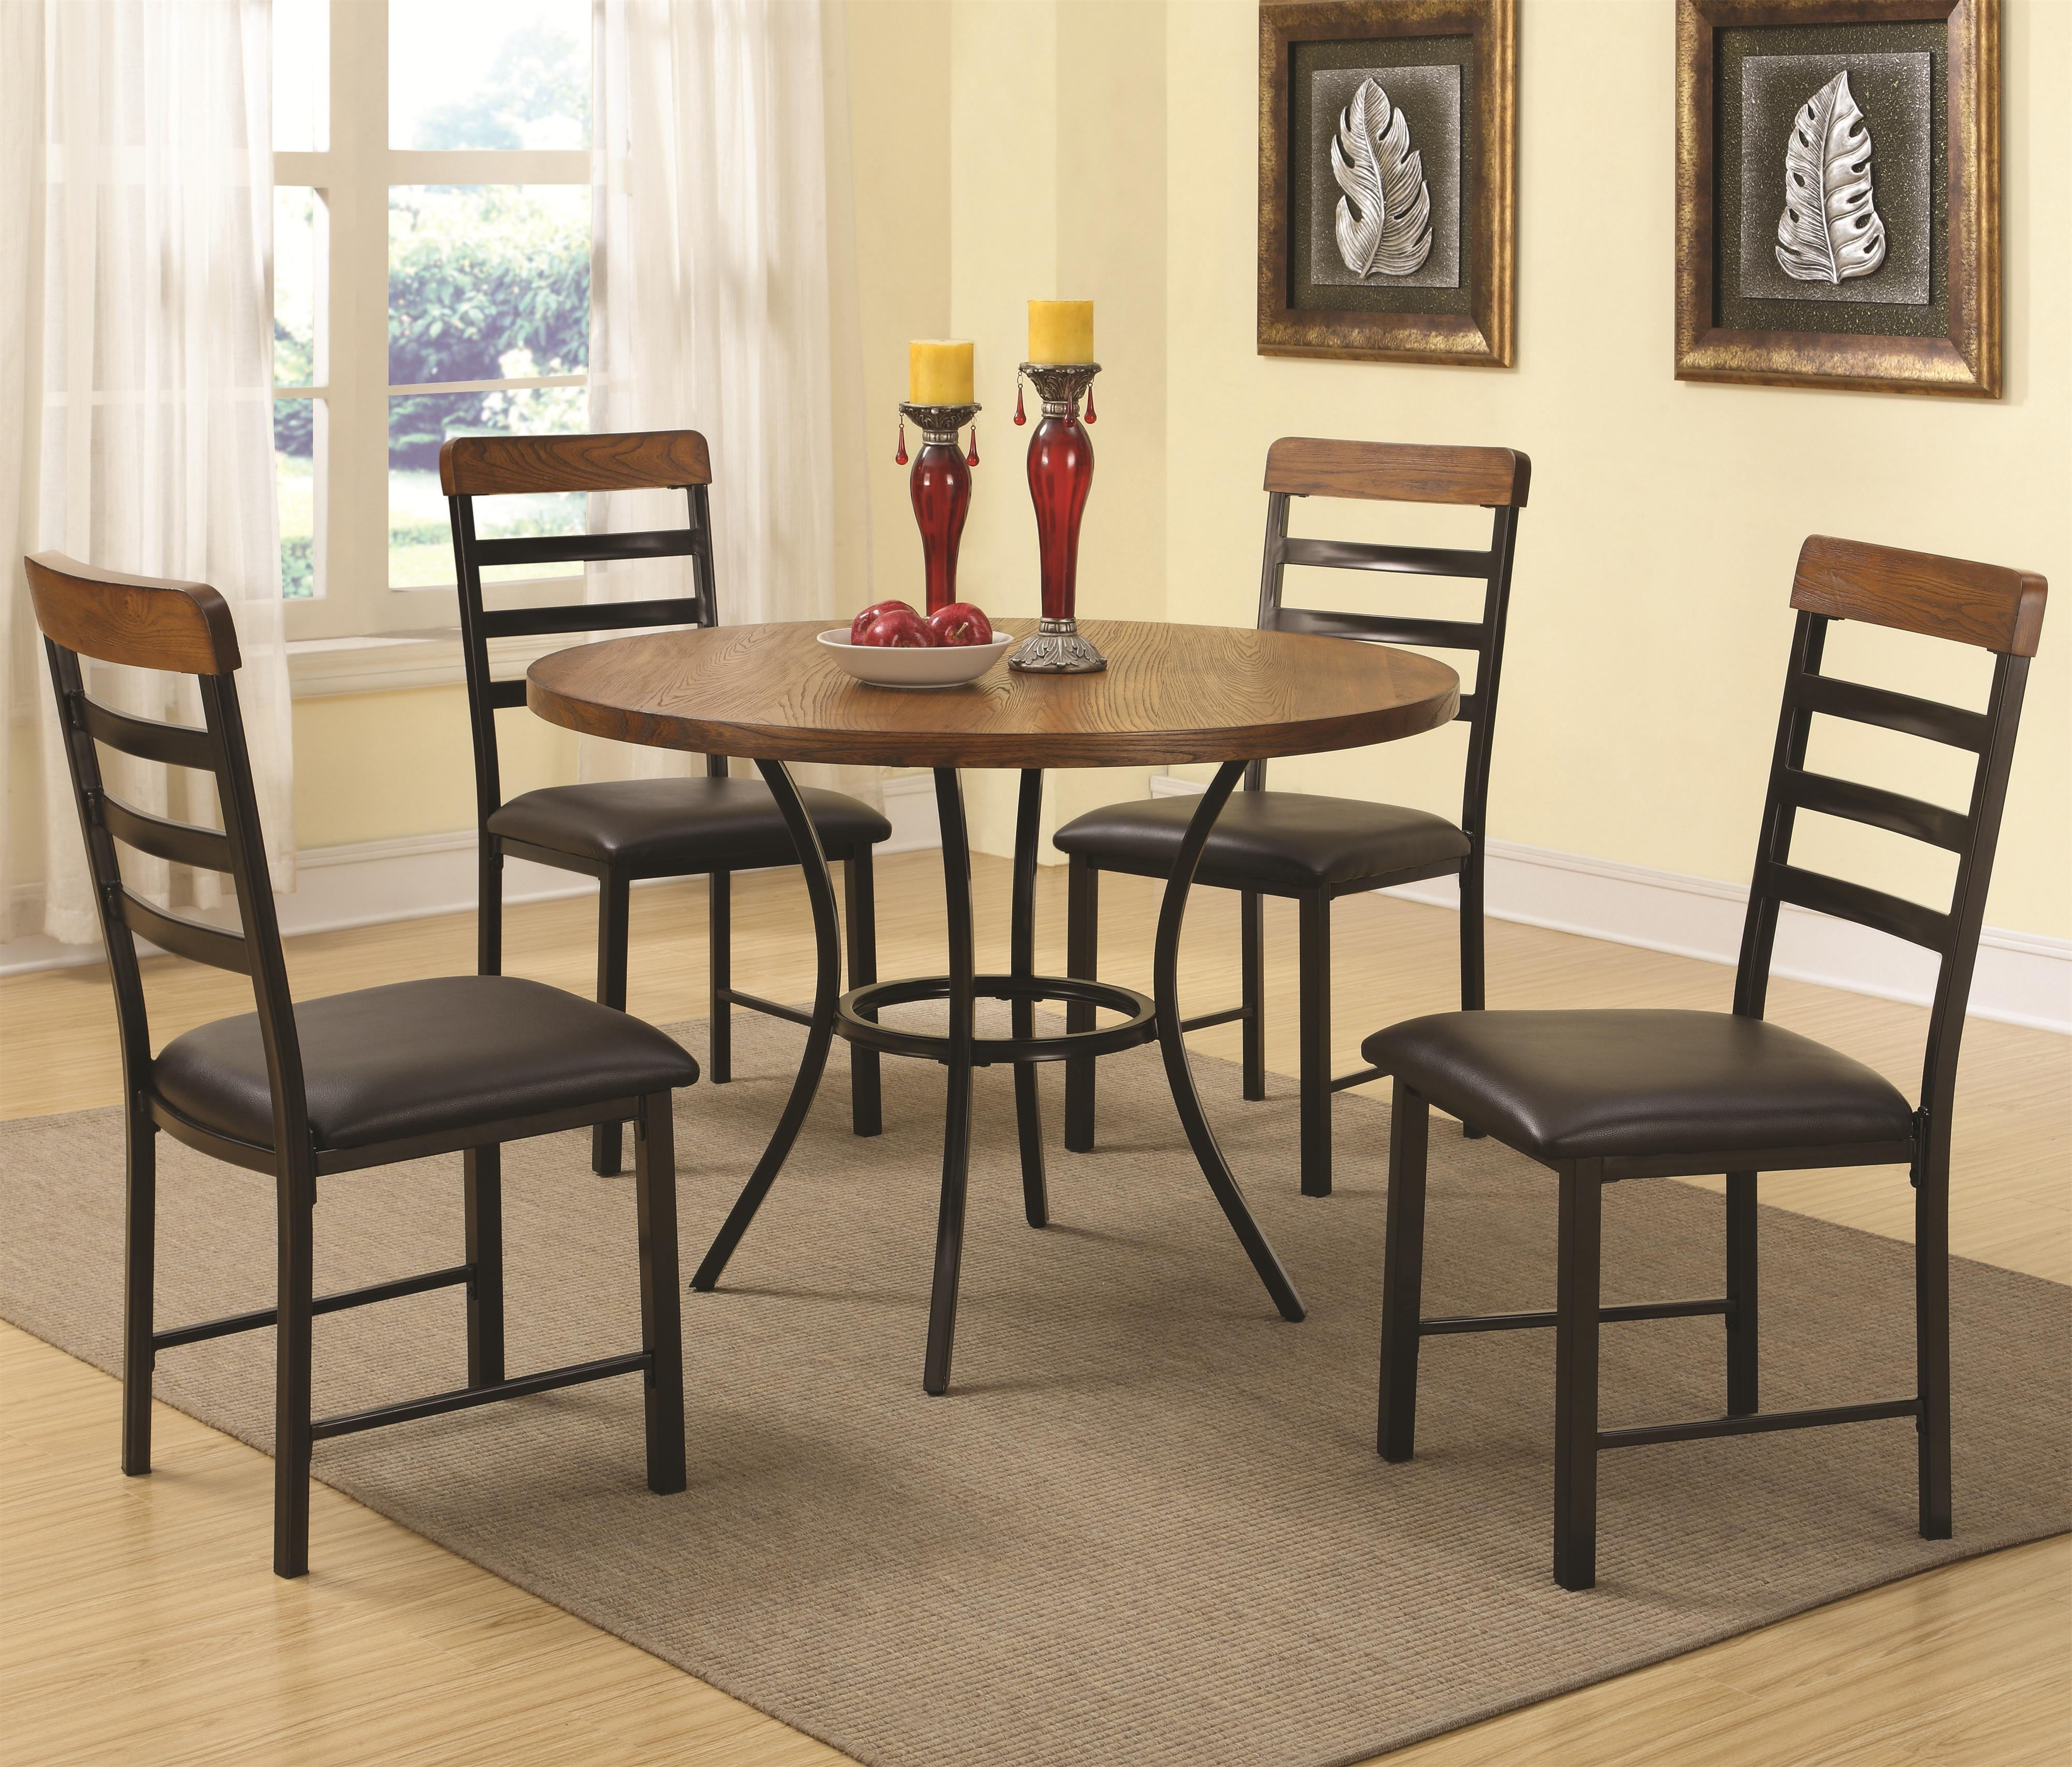 Best And Newest Noah Dining Tables Within Noah 5 Piece Dining Set With Round Pedestal Table And Ladderback (View 20 of 25)